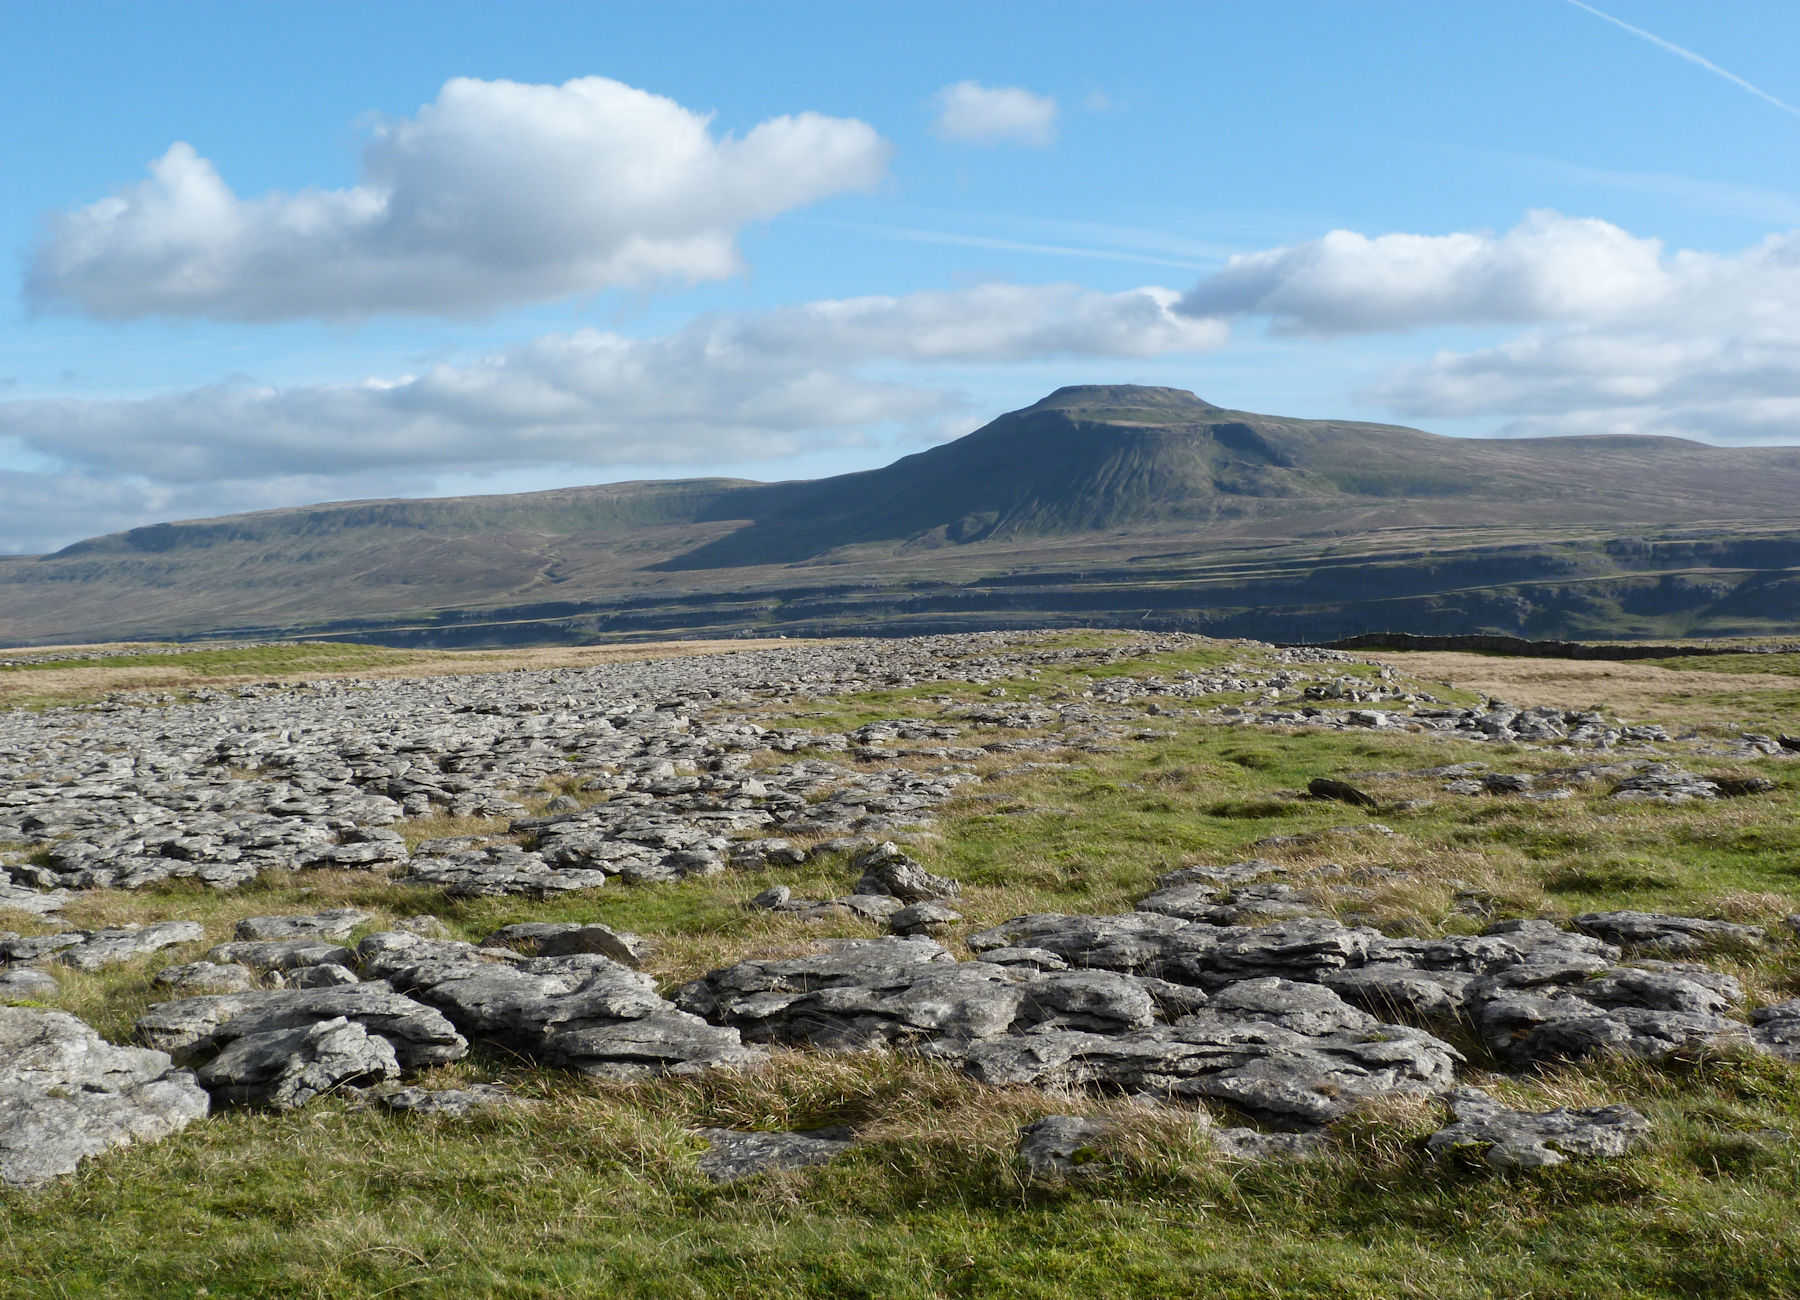 Ingleborough